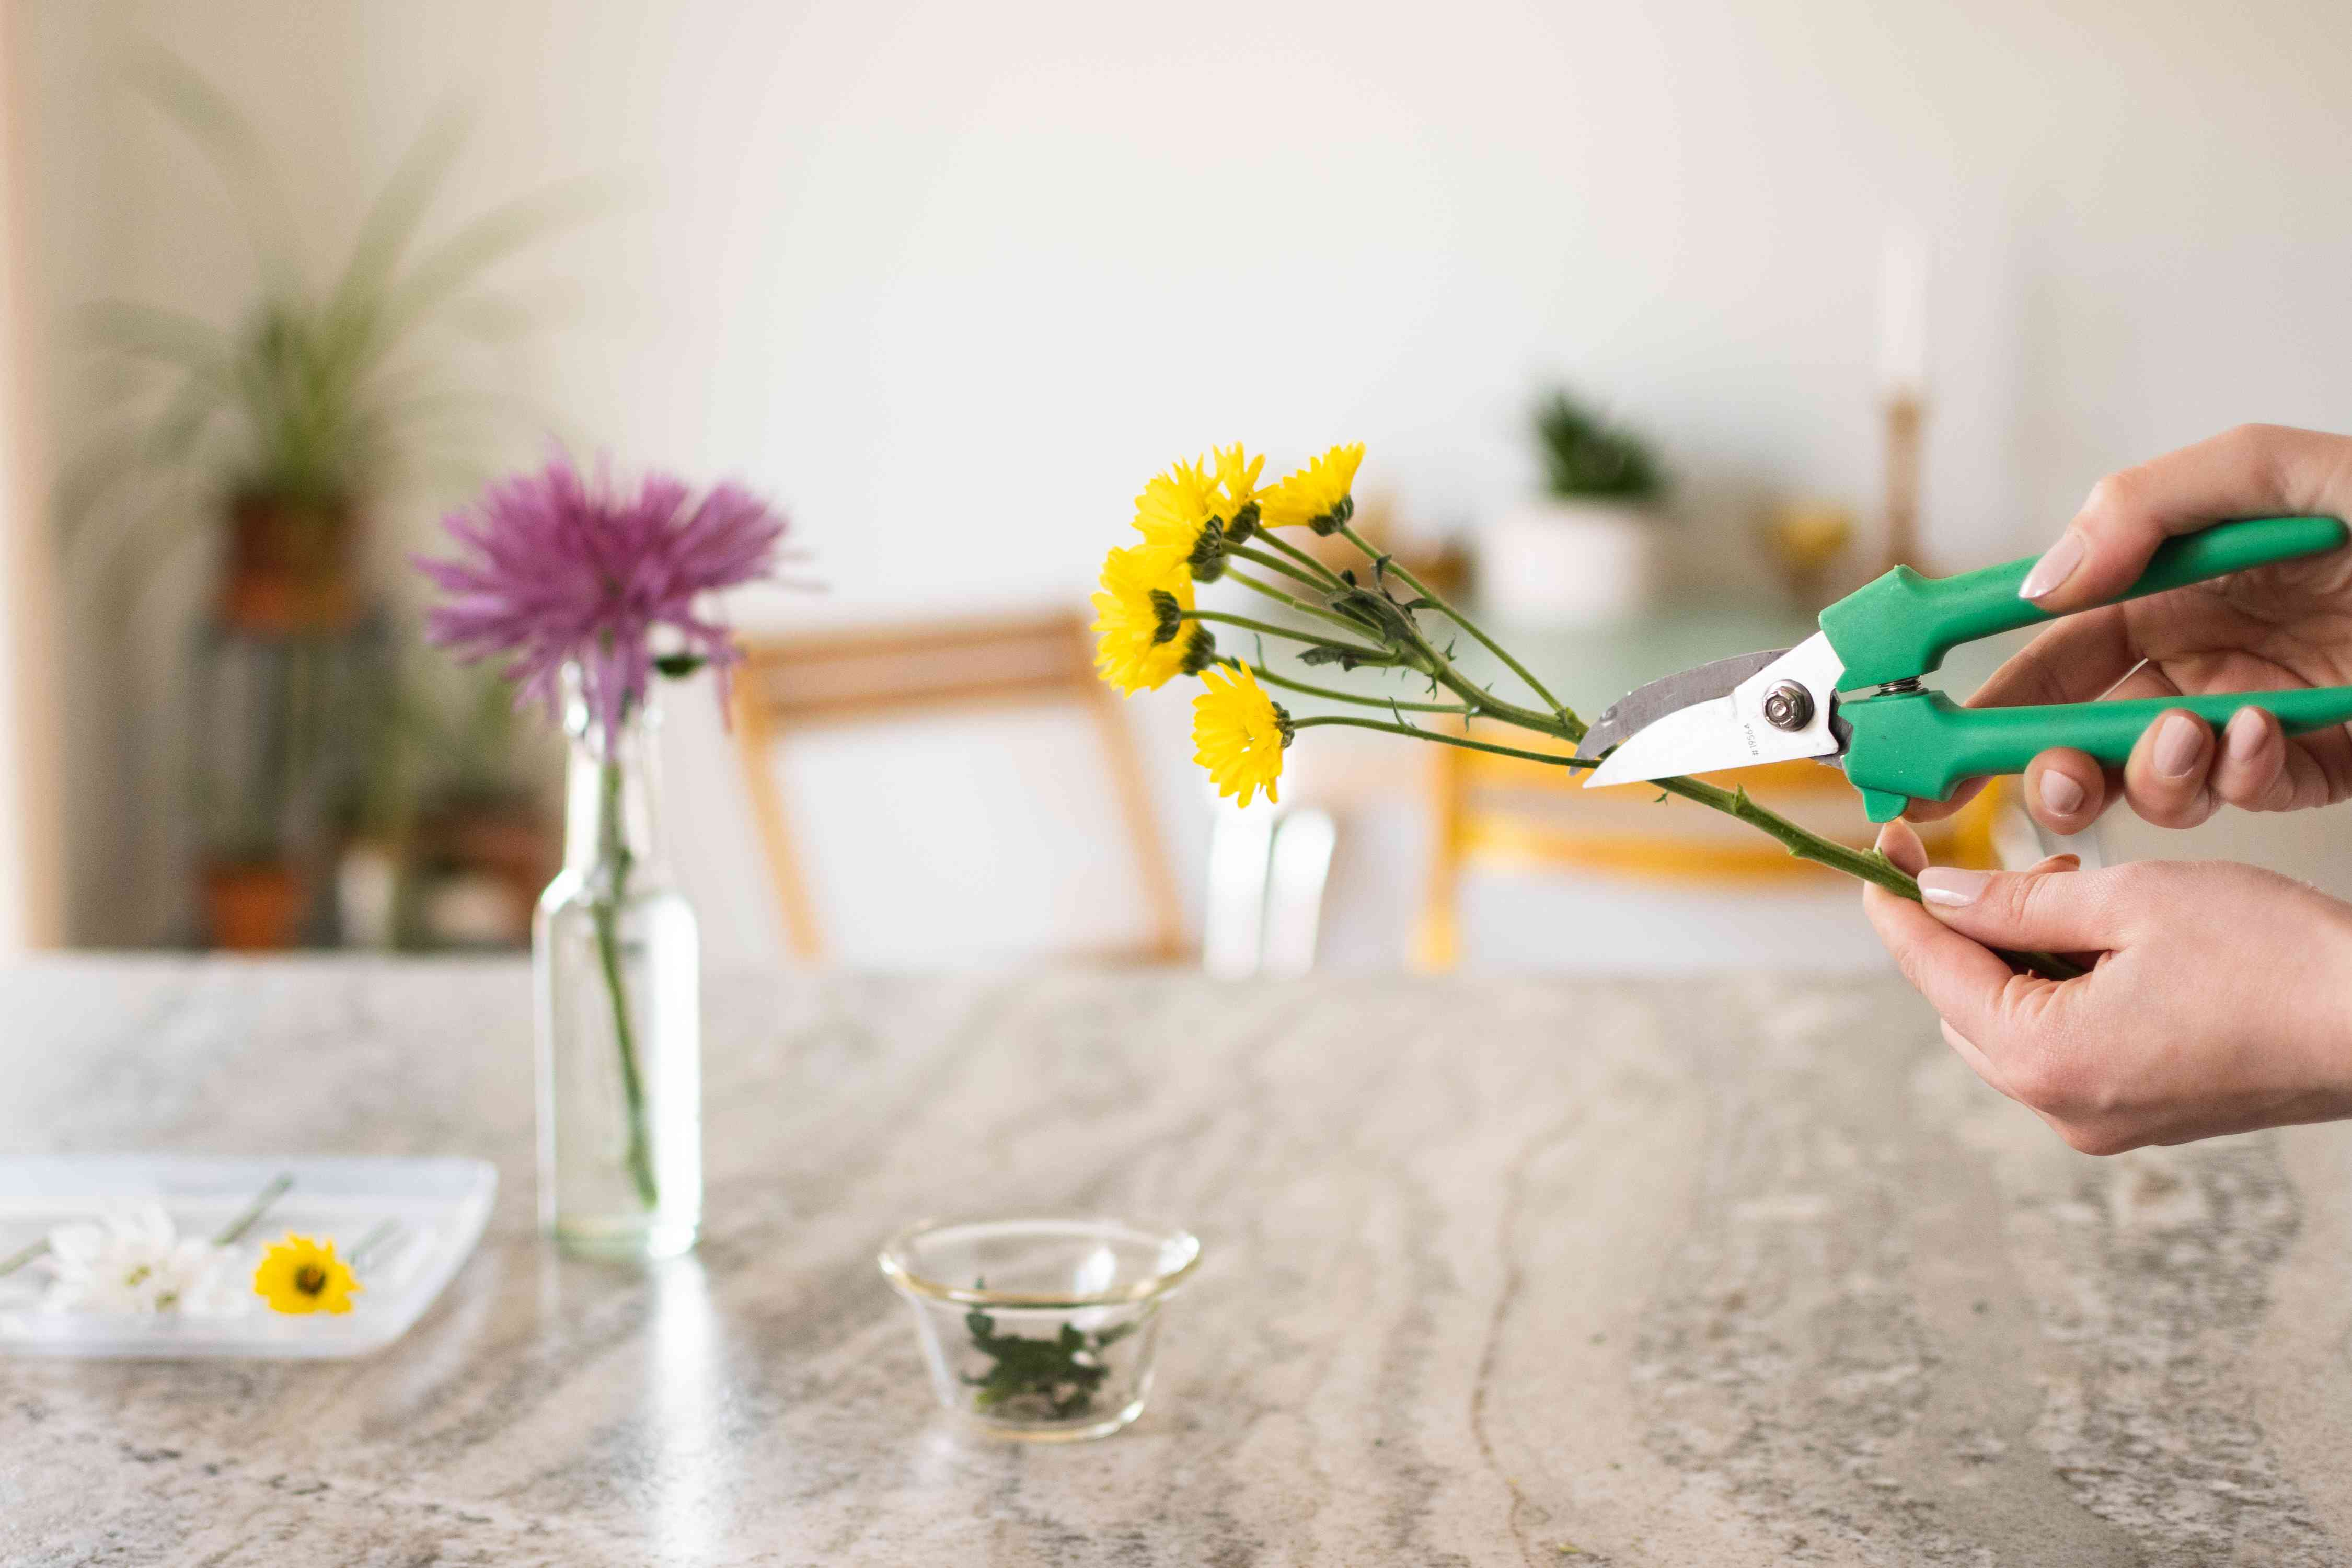 Yellow flower stems being cut with handheld pruners to prepare for drying